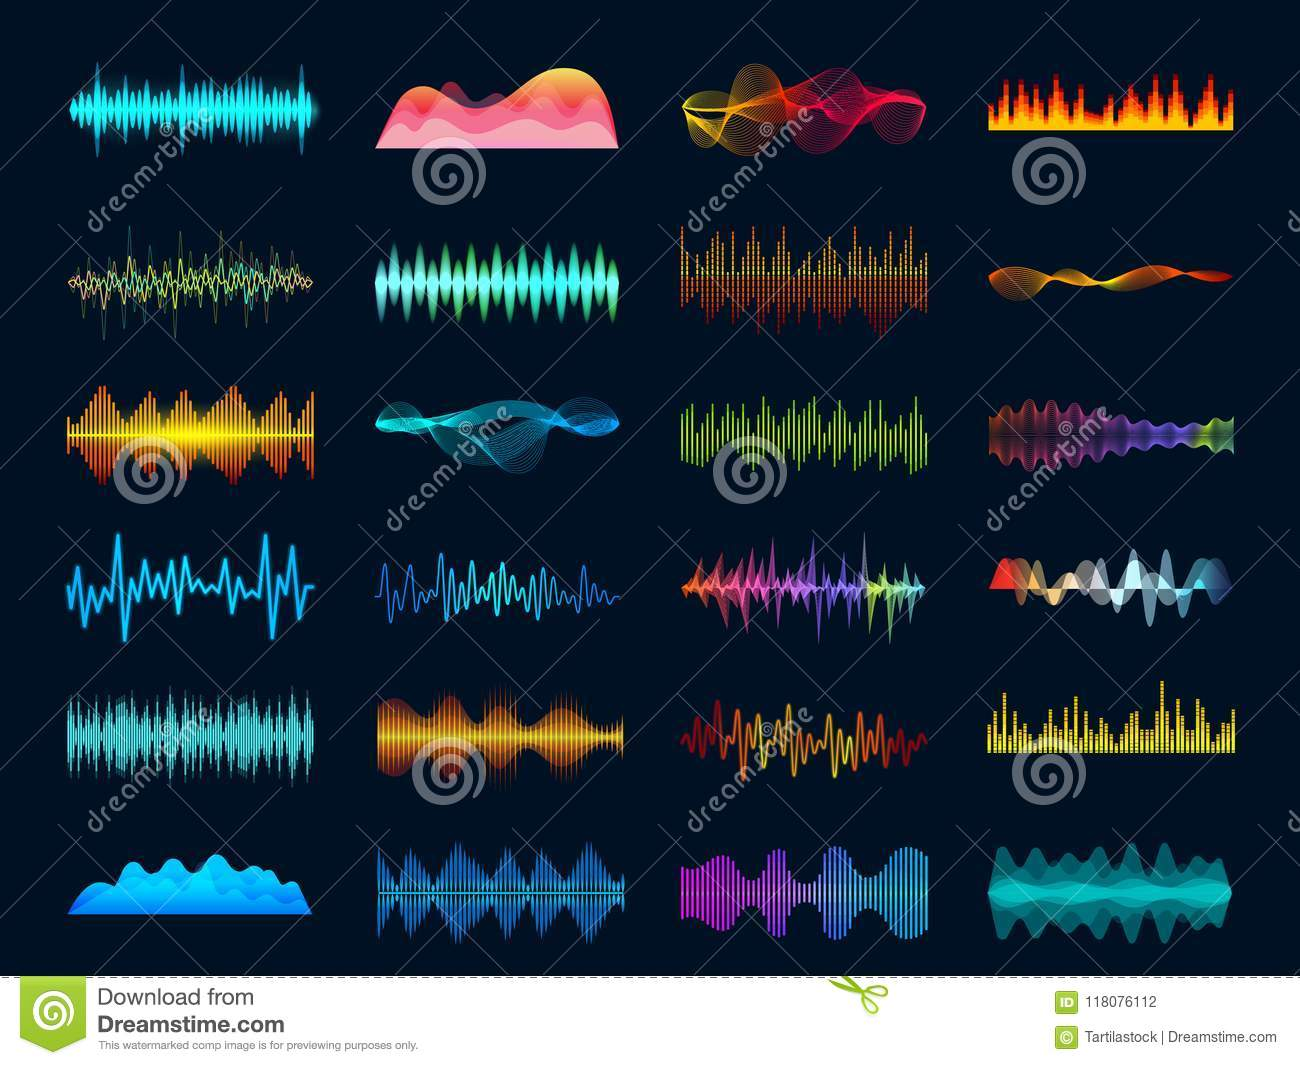 Audio waveform signals, wave song equalizer, stereo recorder sound visualization. Soundtrack signal and melody beat